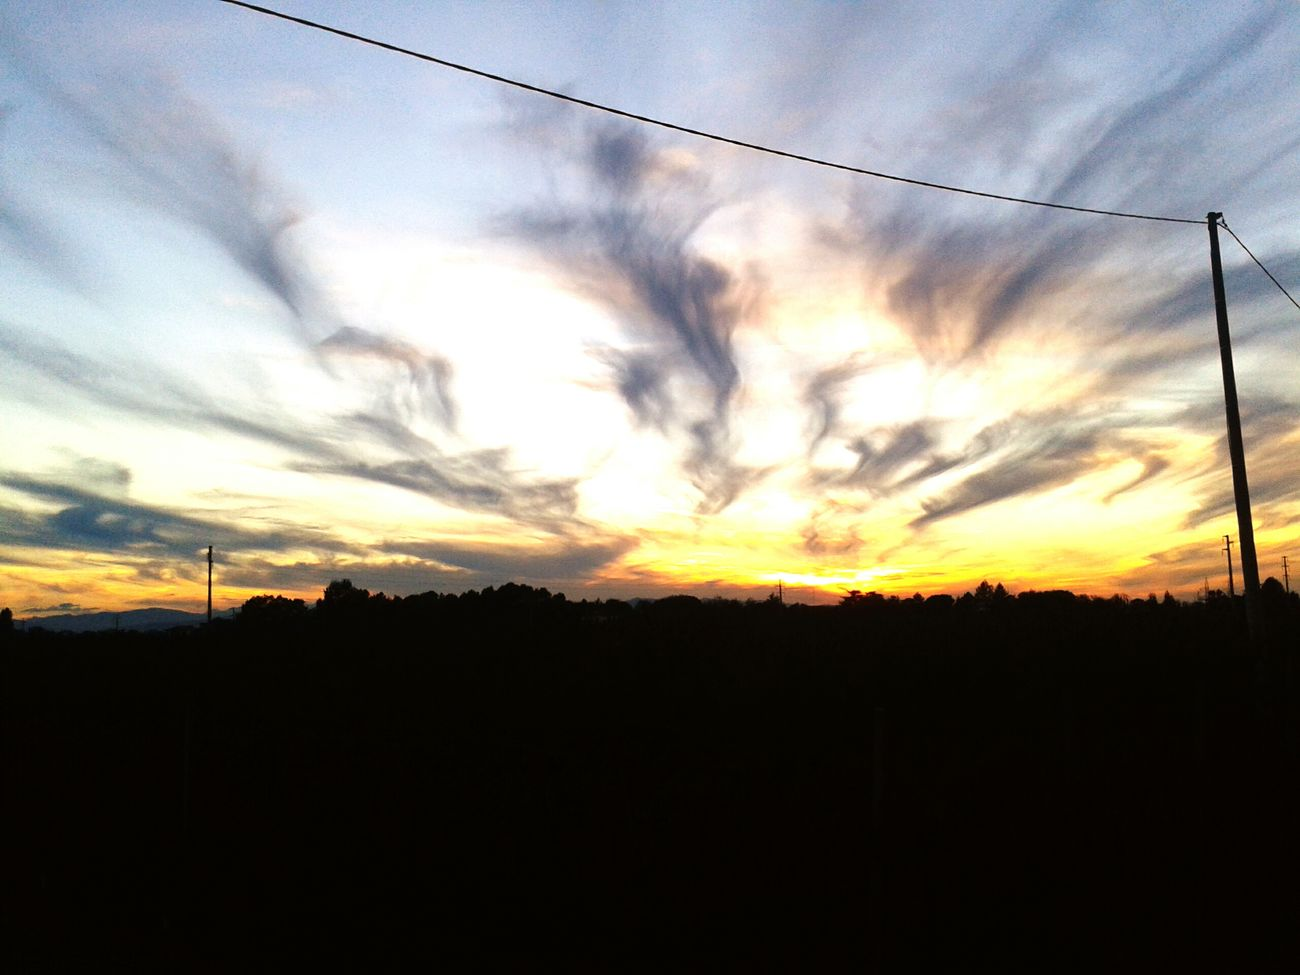 Splendido tramonto tutto da vivere Tramonto Darkness And Light Sunset Clouds Light And Shadow Wonderful Cloud Formation Sky Dramatic Sky